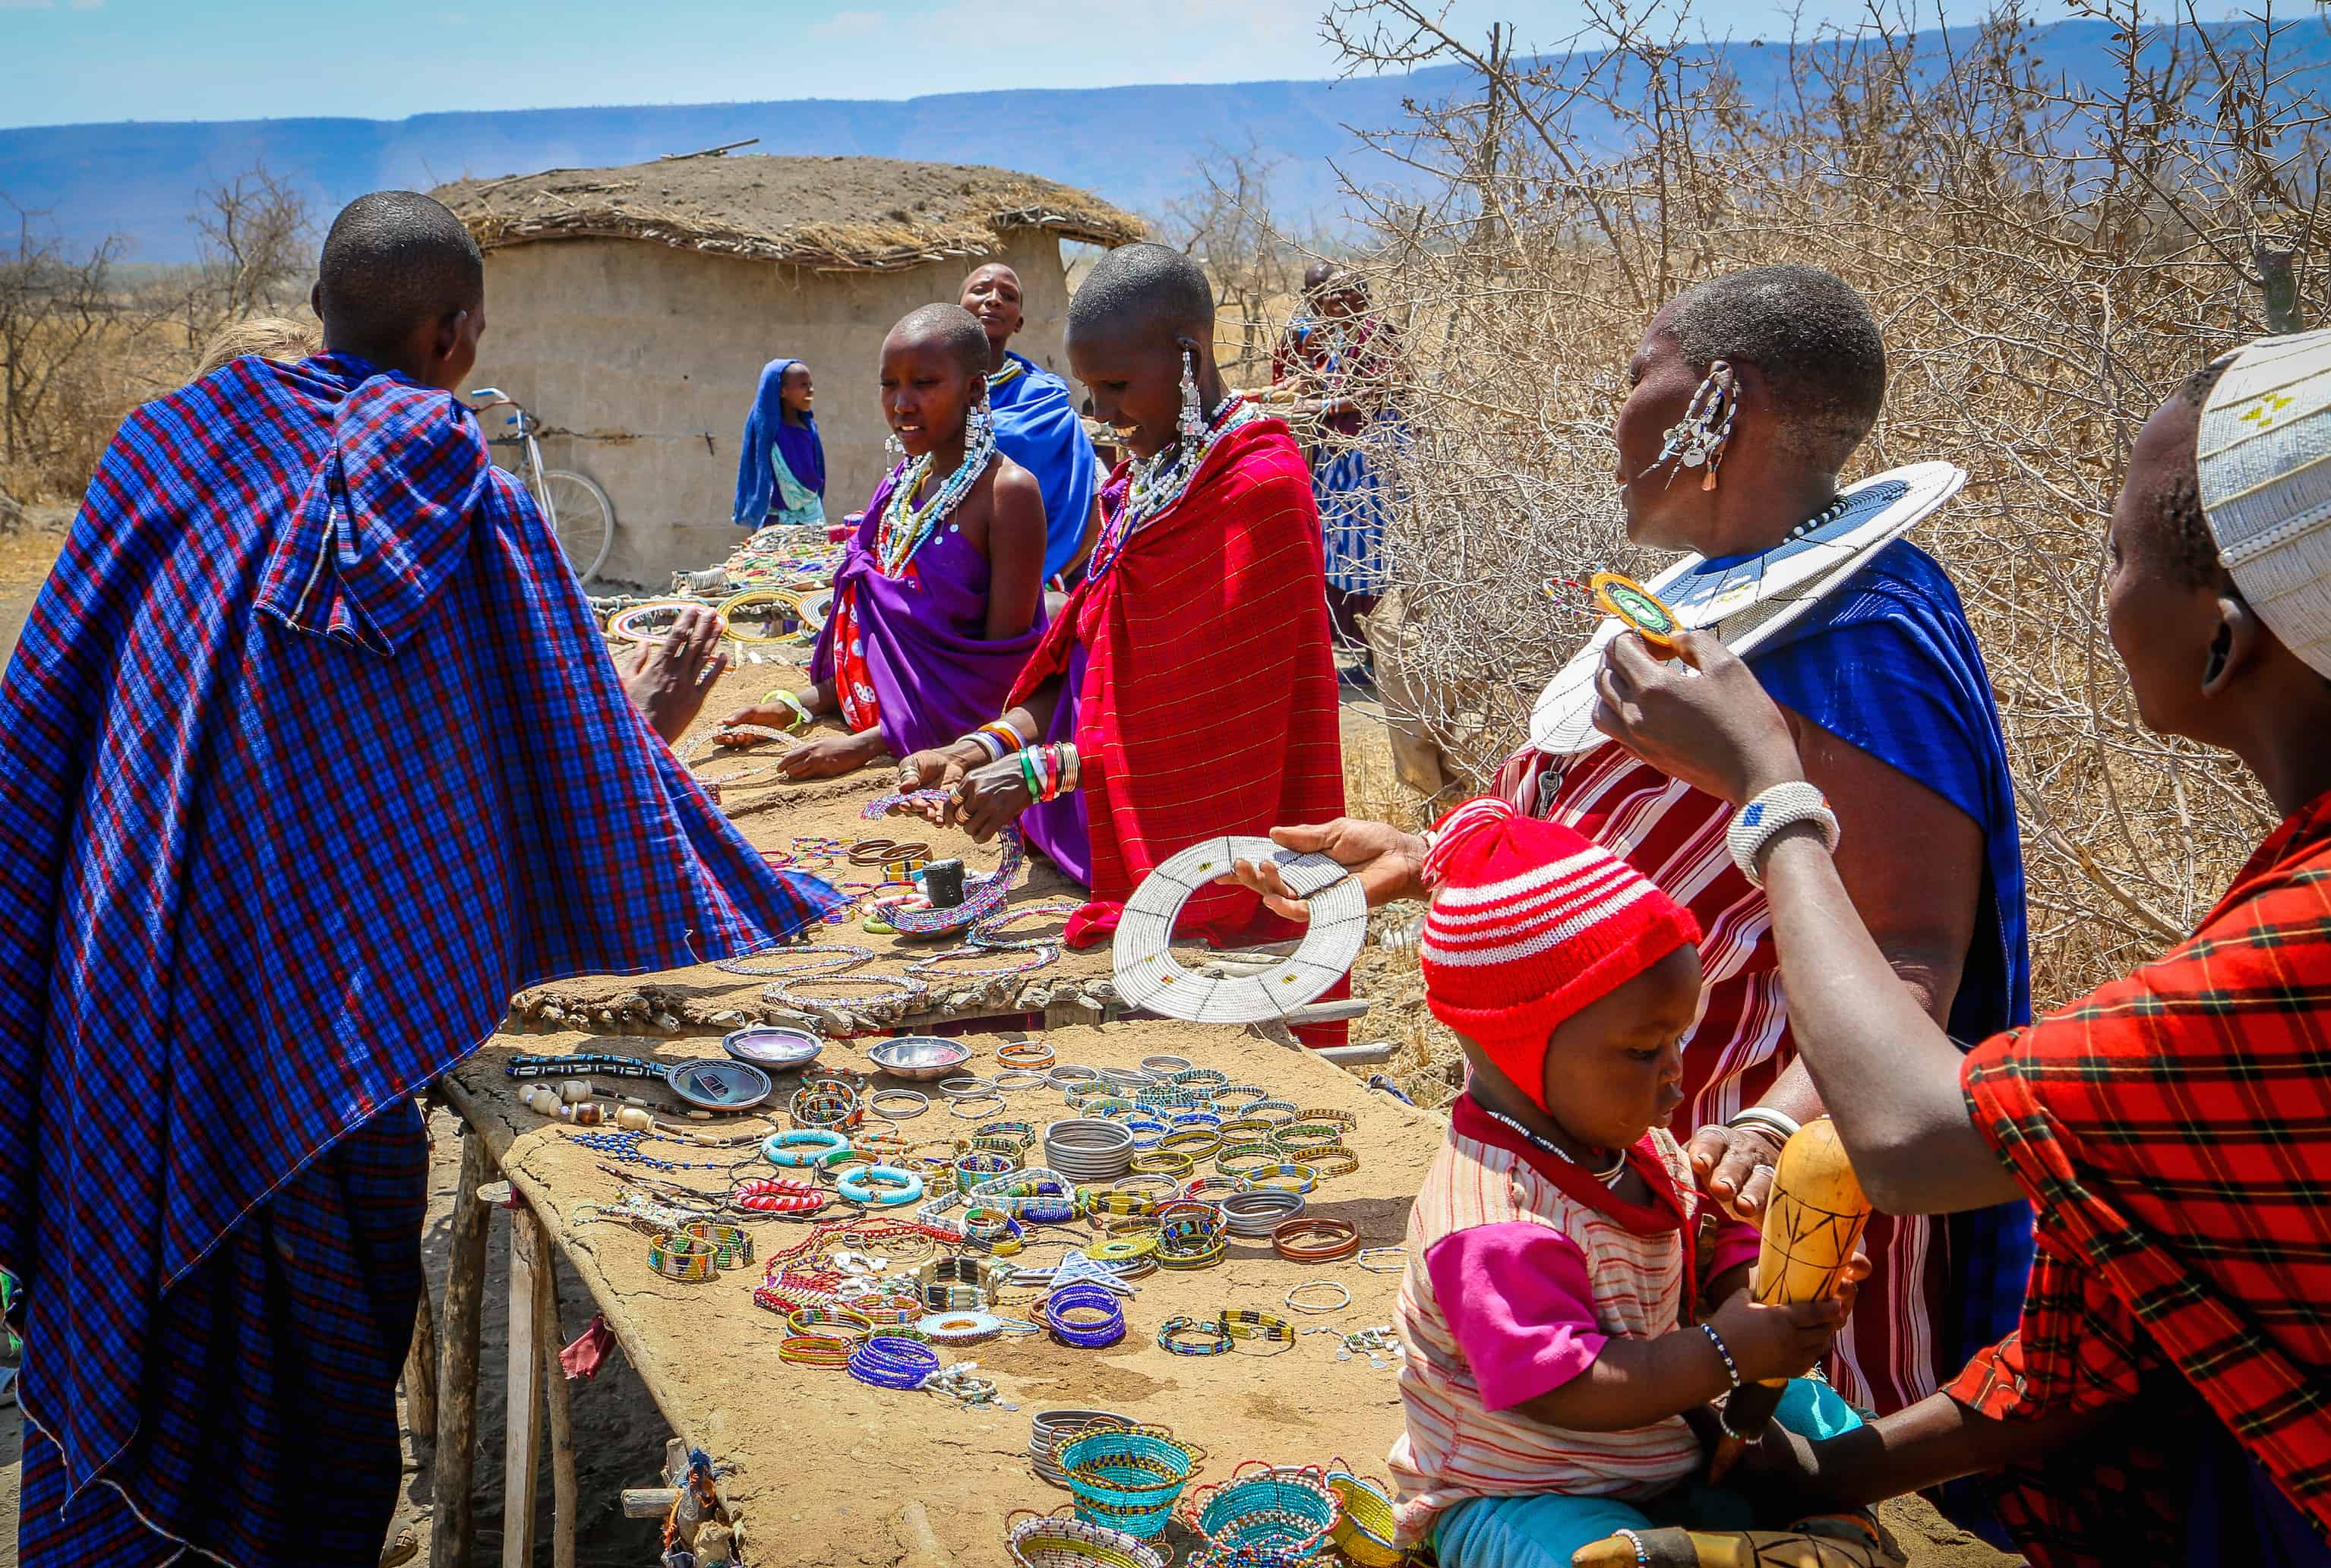 Maasai Culture: Selling Arts & Crafts